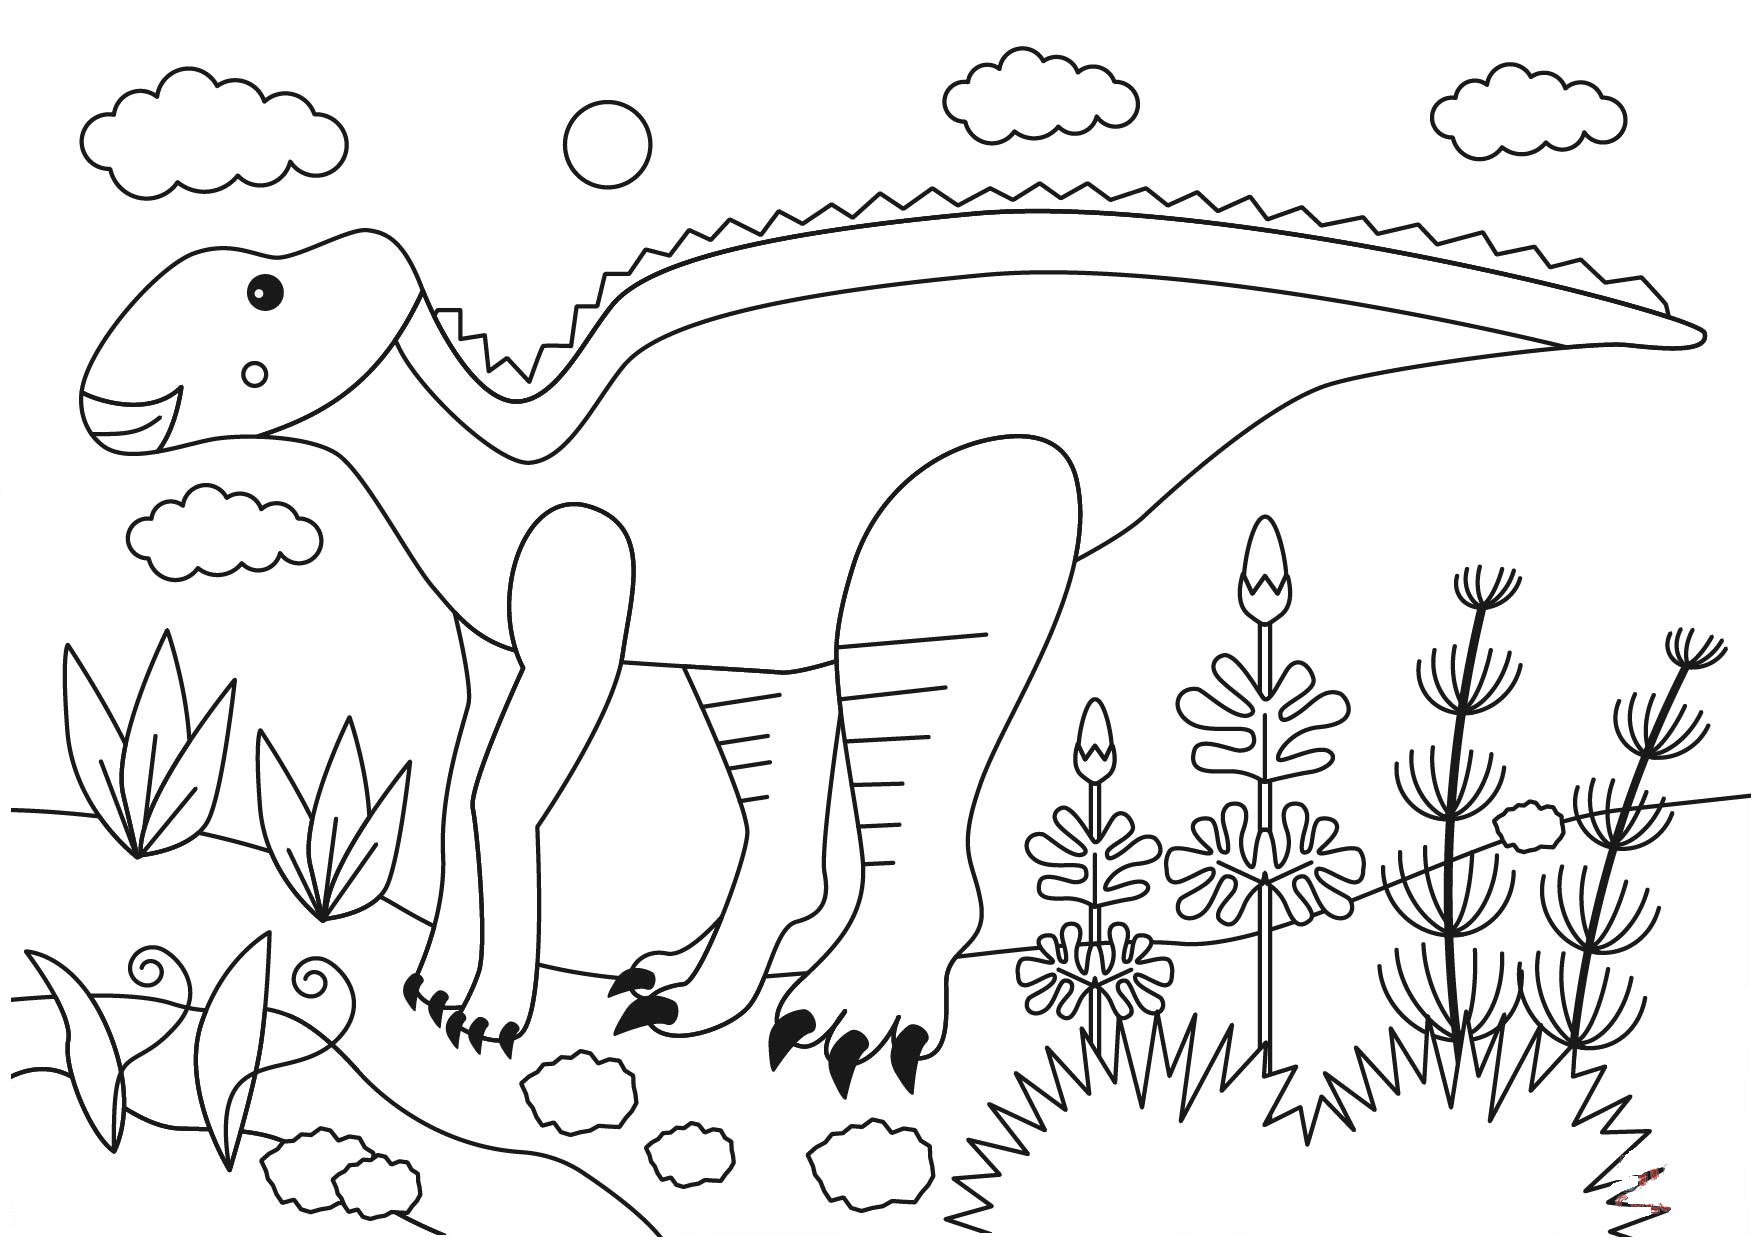 This is an amazing image of a Rhinorex dinosaur. It is an